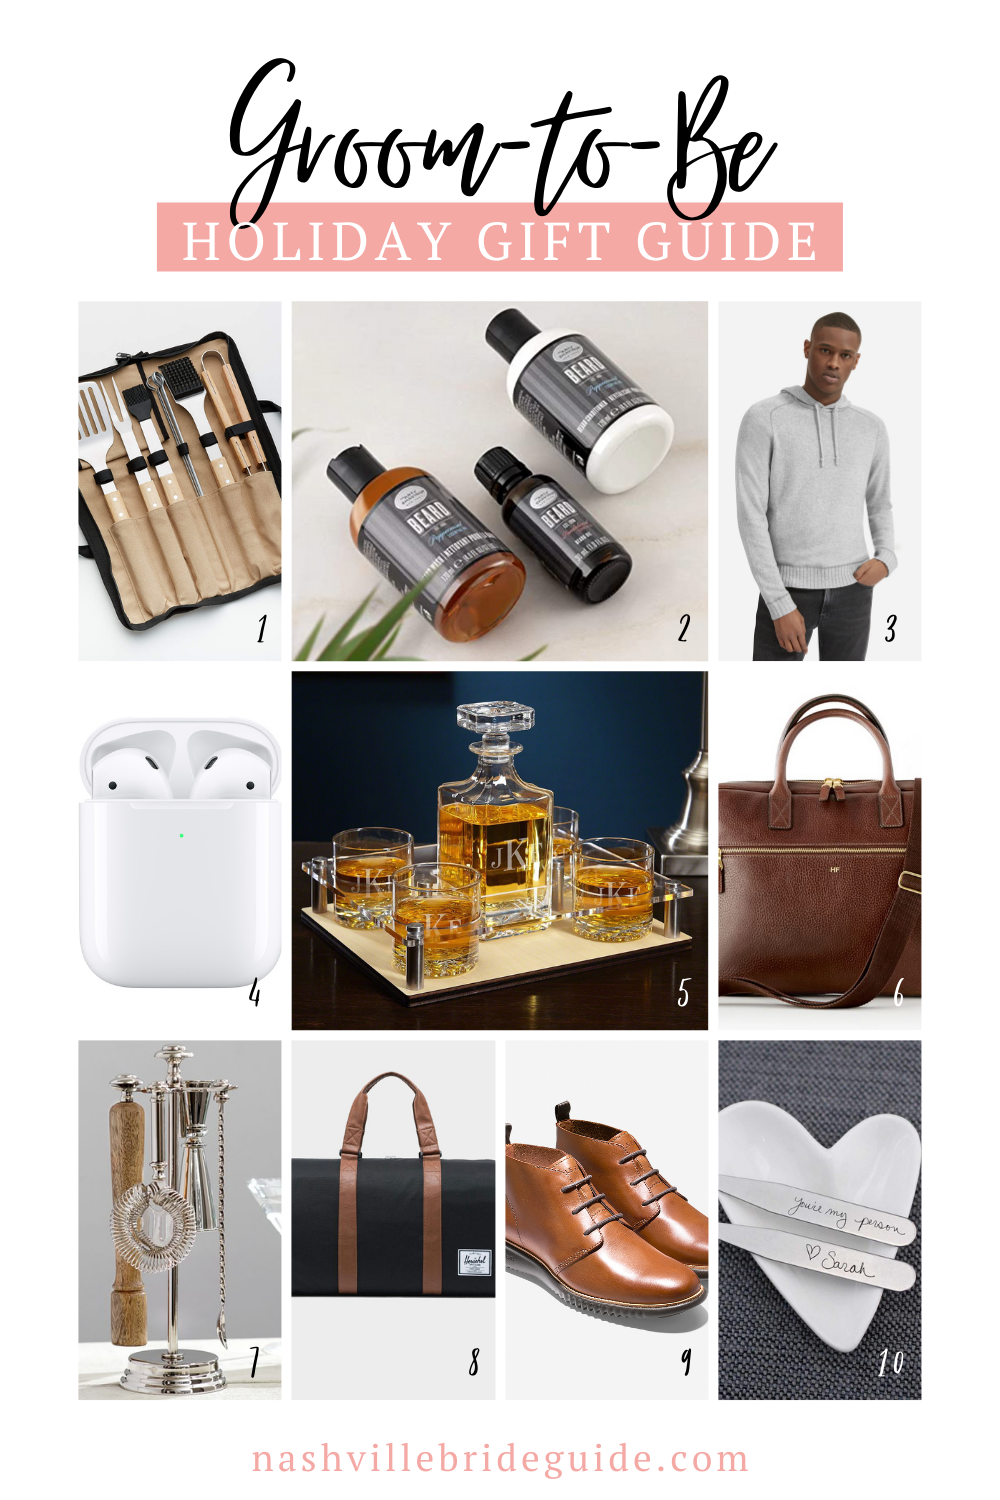 Groom to Be Holiday Gift Guide featured on Nashville Bride Guide